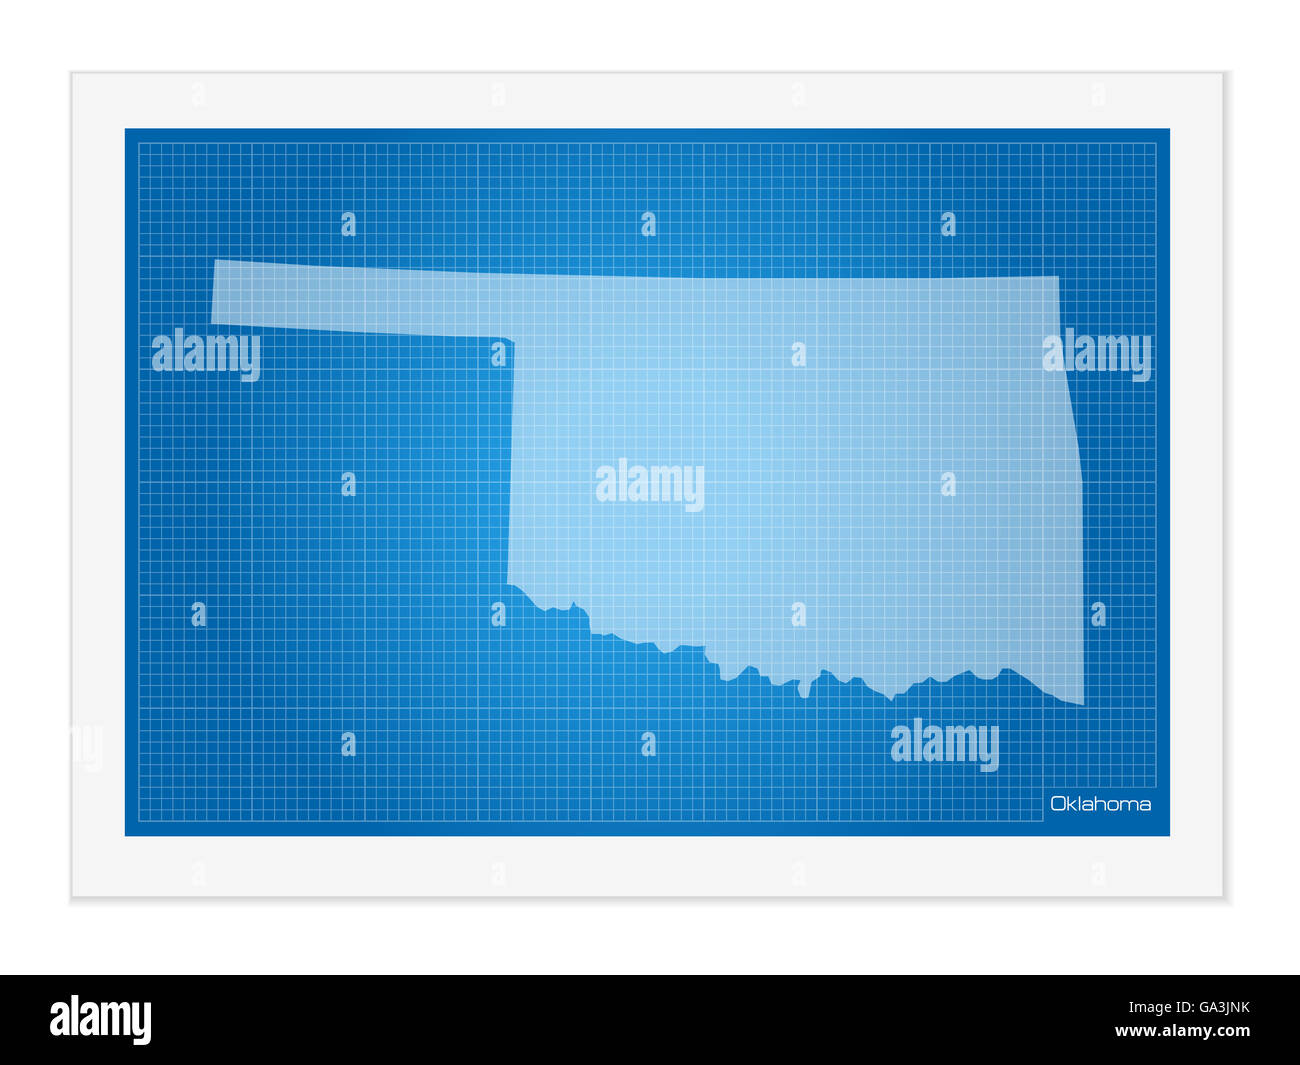 Oklahoma outline vector stock photos oklahoma outline vector stock oklahoma on blueprint on a white background stock image malvernweather Image collections